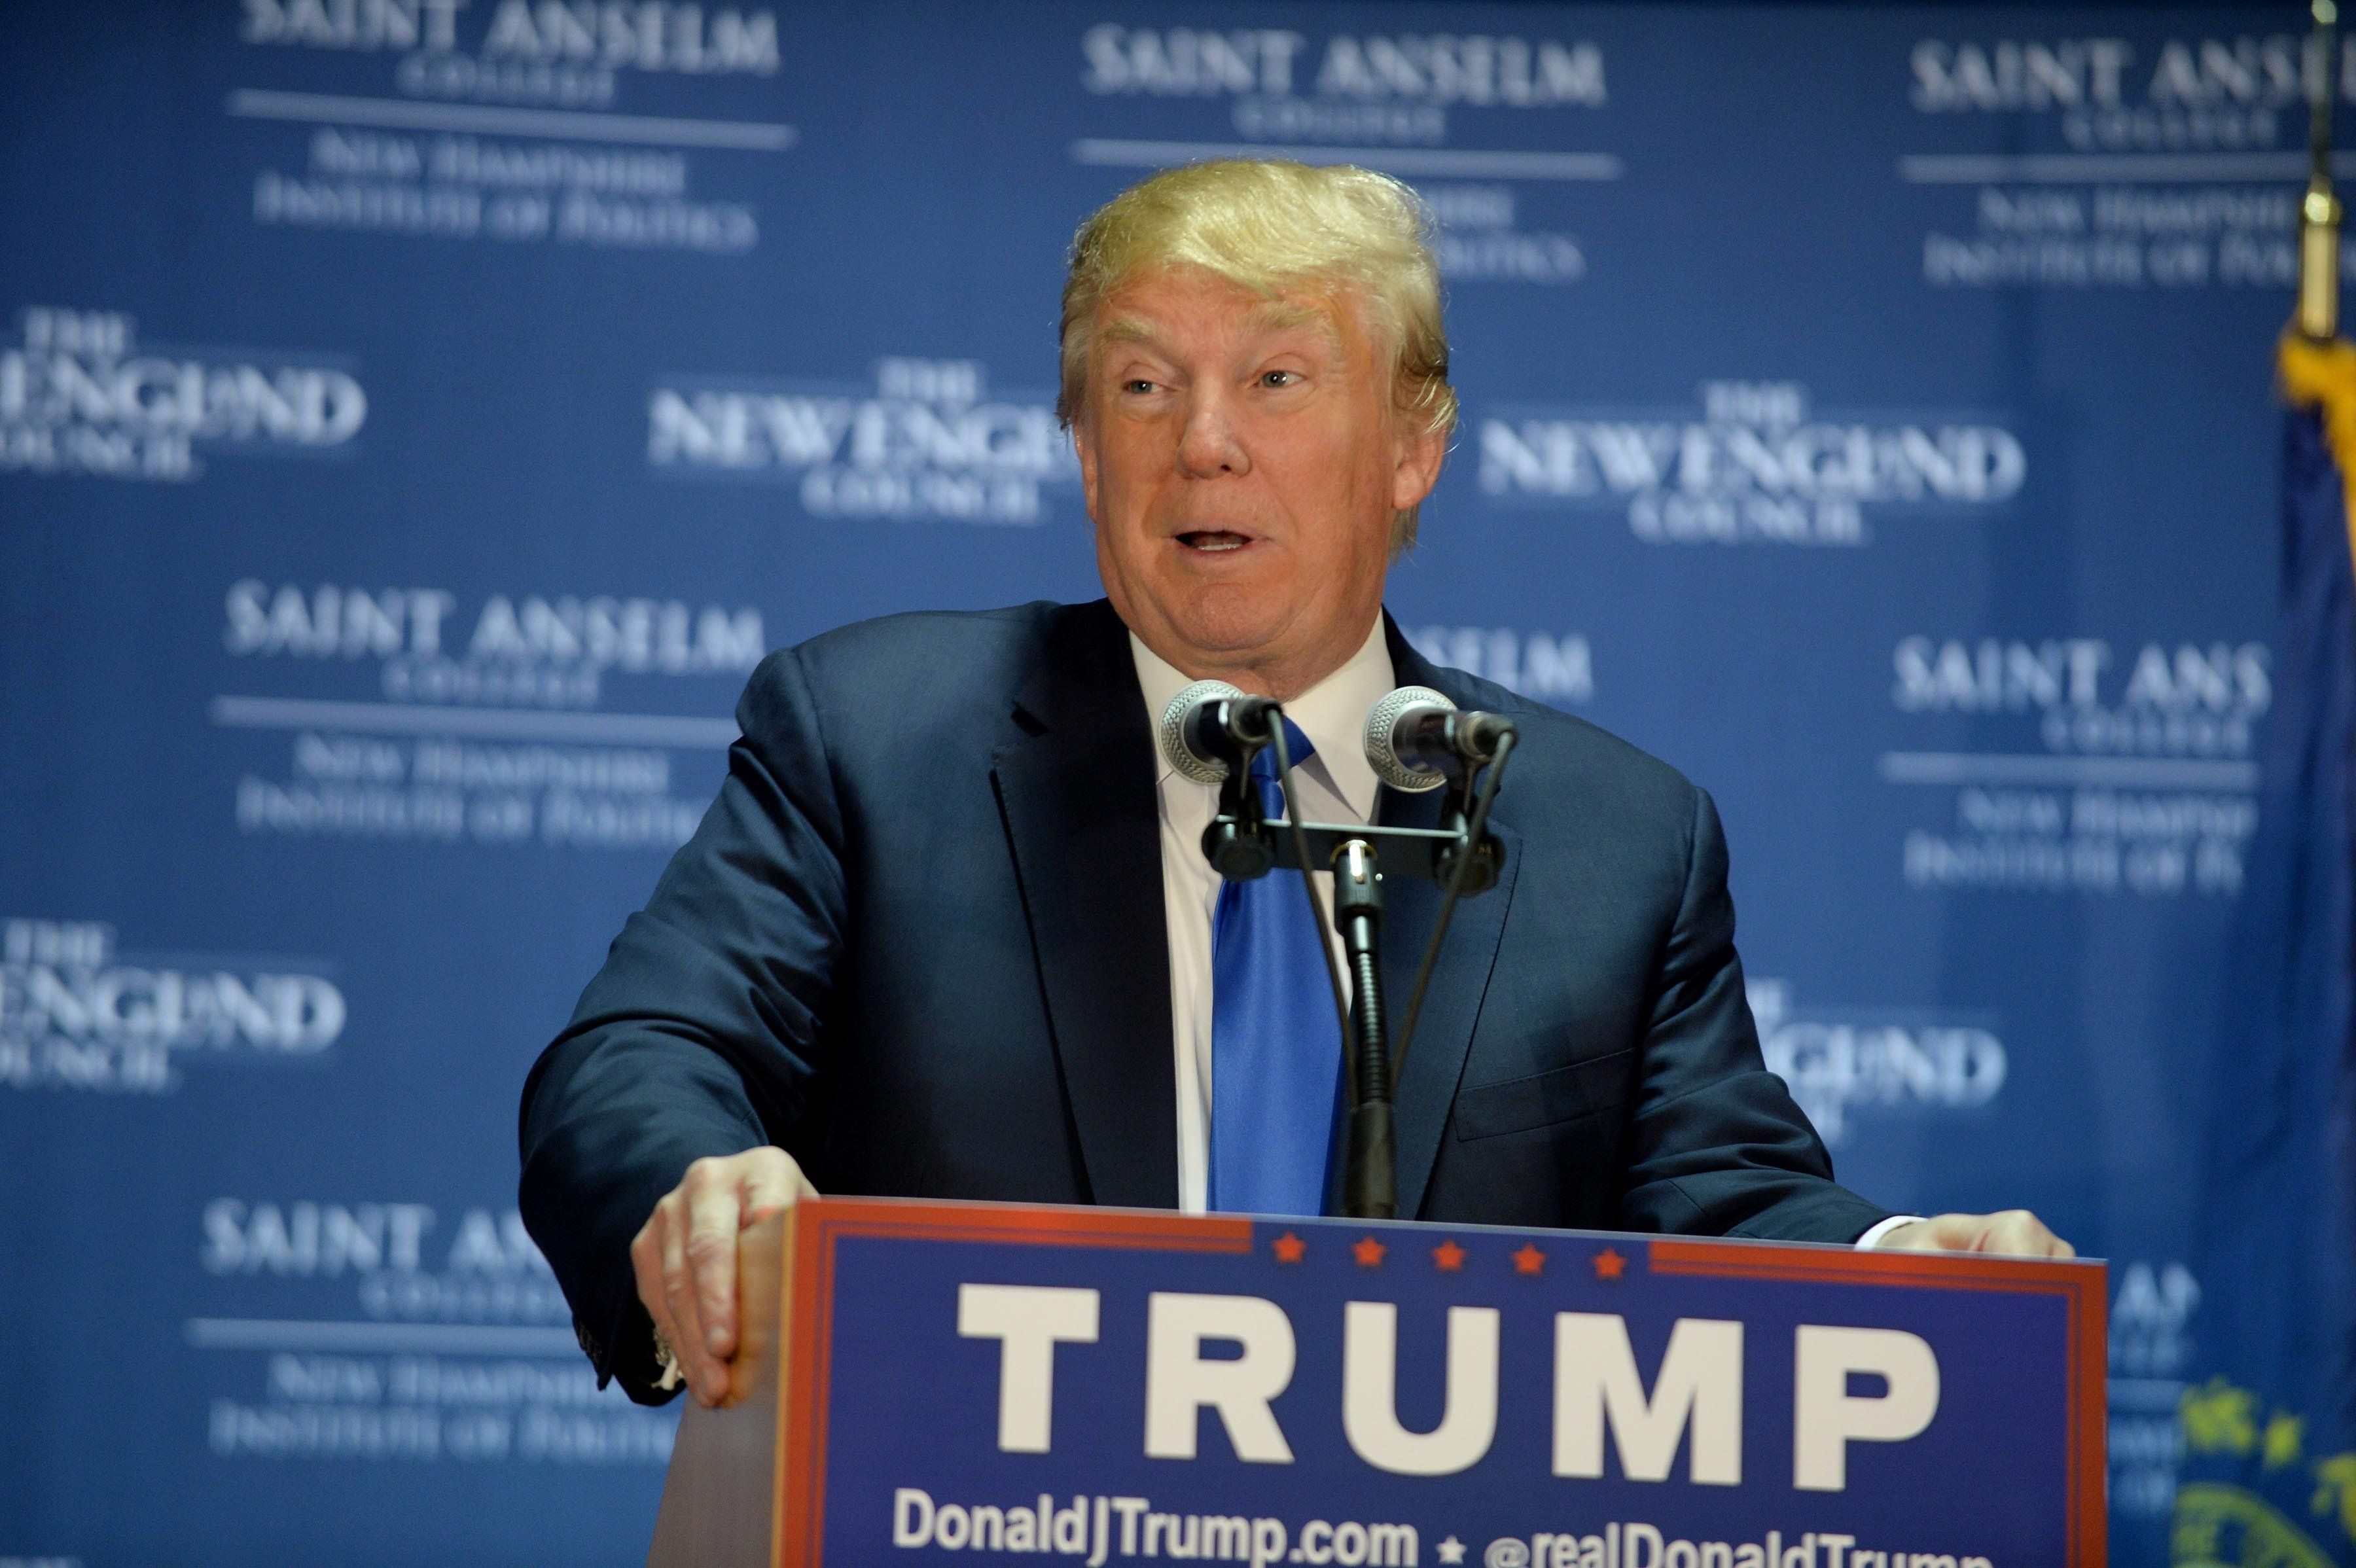 MANCHESTER, NH - NOVEMBER 11: Republican Presidential candidate Donald Trump speaks at 'Politics And Eggs' at the Radisson Hotel, on November 11, 2015 in Manchester, New Hampshire. Coming off the fourth debate Trump continues to run strong in the polls. (Photo by Darren McCollester/Getty Images)